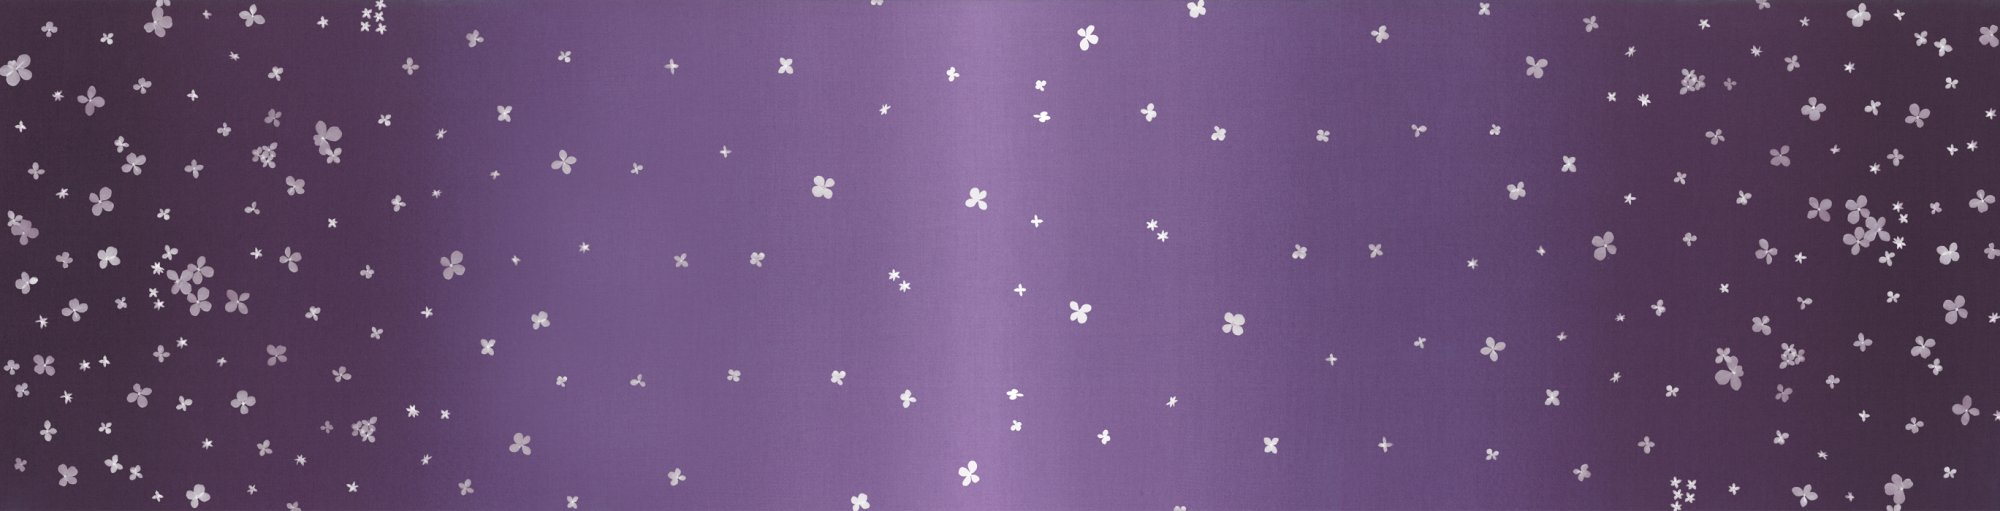 Aubergine Ombre Bloom 10870 224 Ombre Bloom by V and Co.